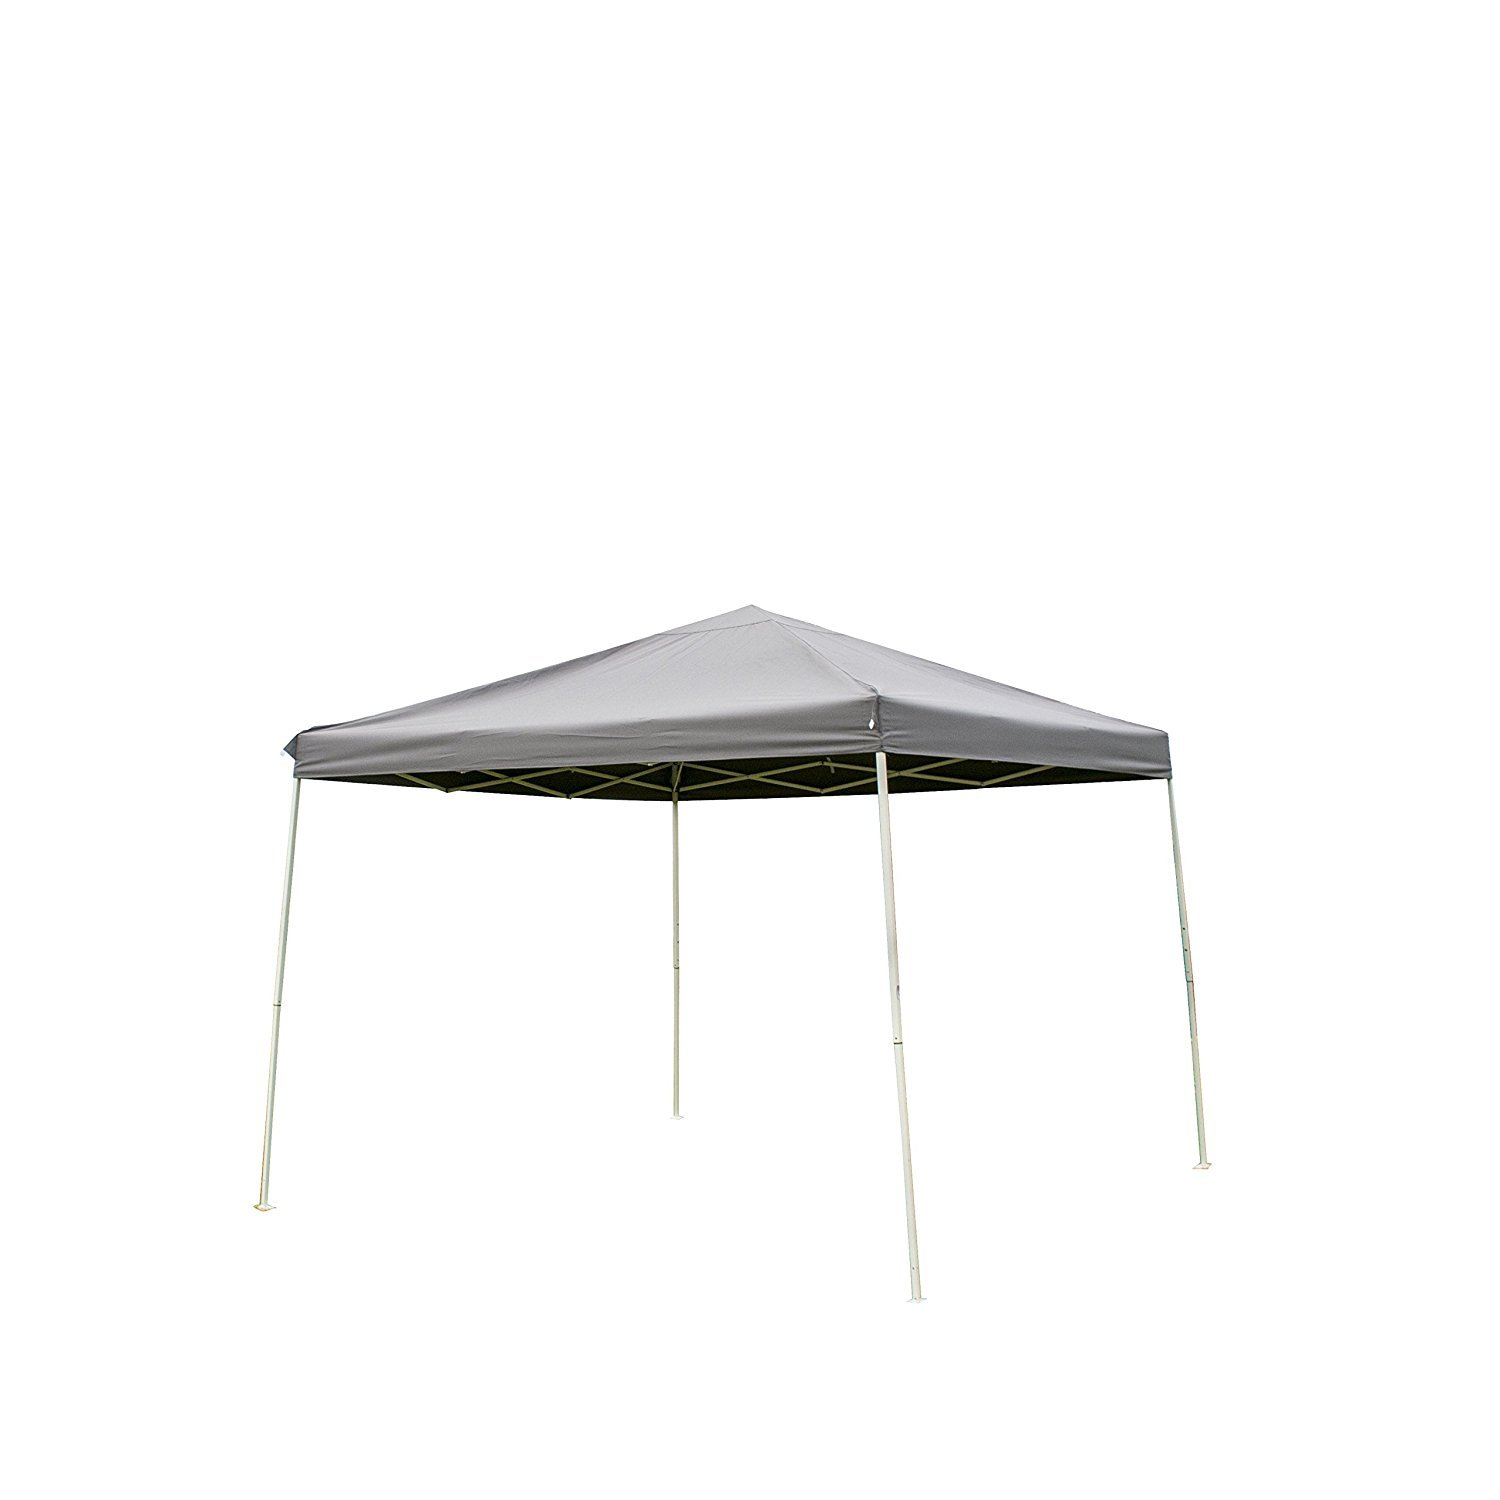 NatureFun 10 x 10 Feet Outdoor Steel Frame Pop Up Patio Instant Canopy, PU Coated Party, Dark Grey